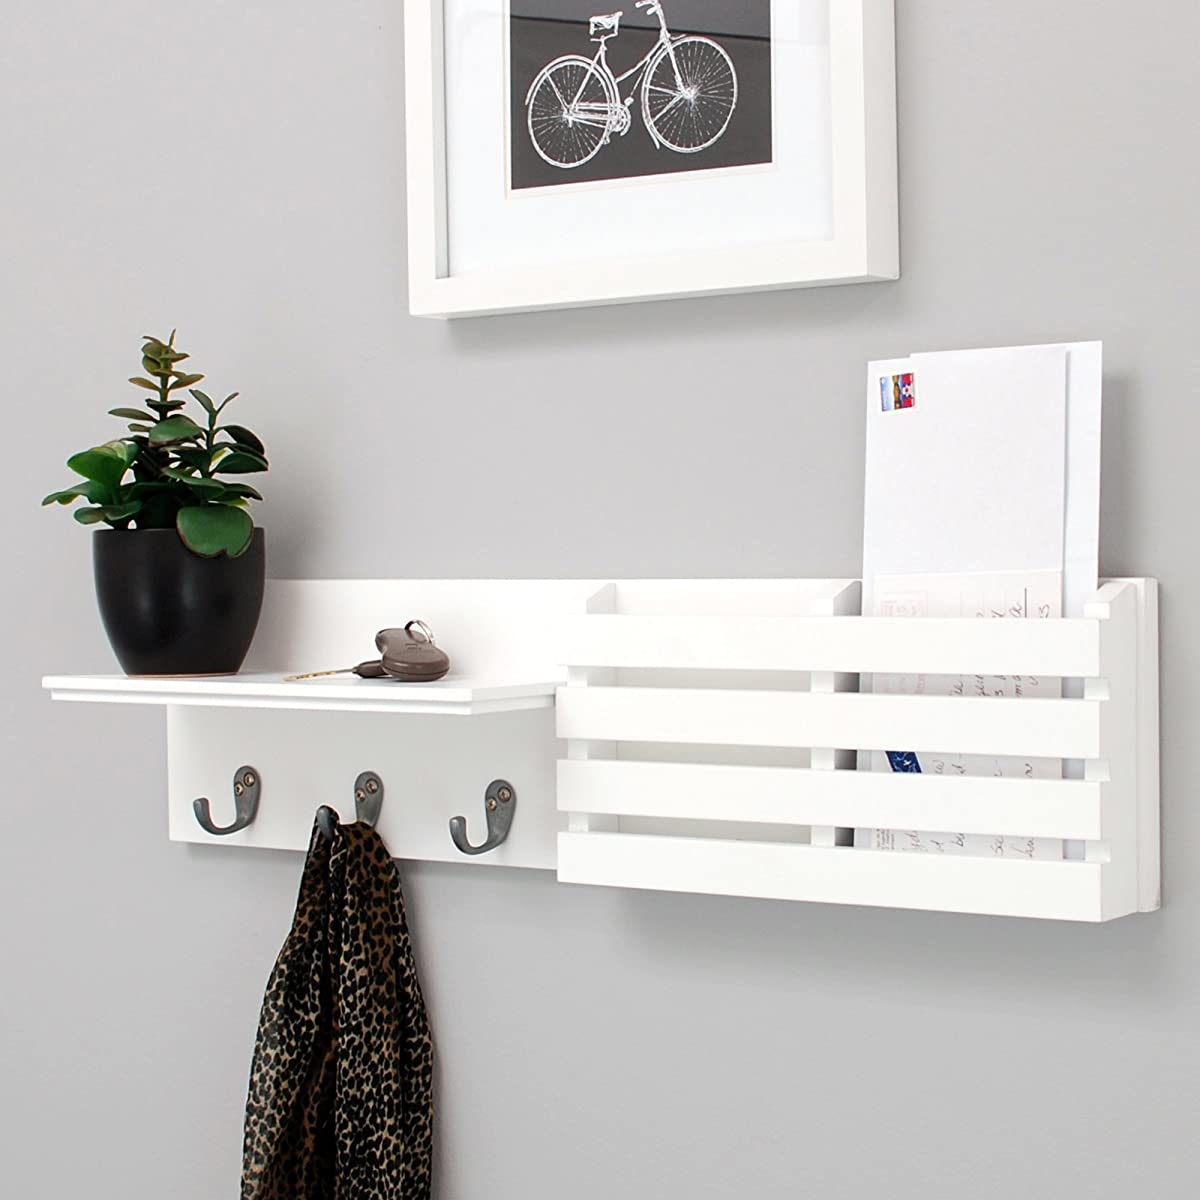 Kiera Grace Sydney Wall Shelf and Mail Holder with 3 Hooks, 24-Inch by 6-Inch, White